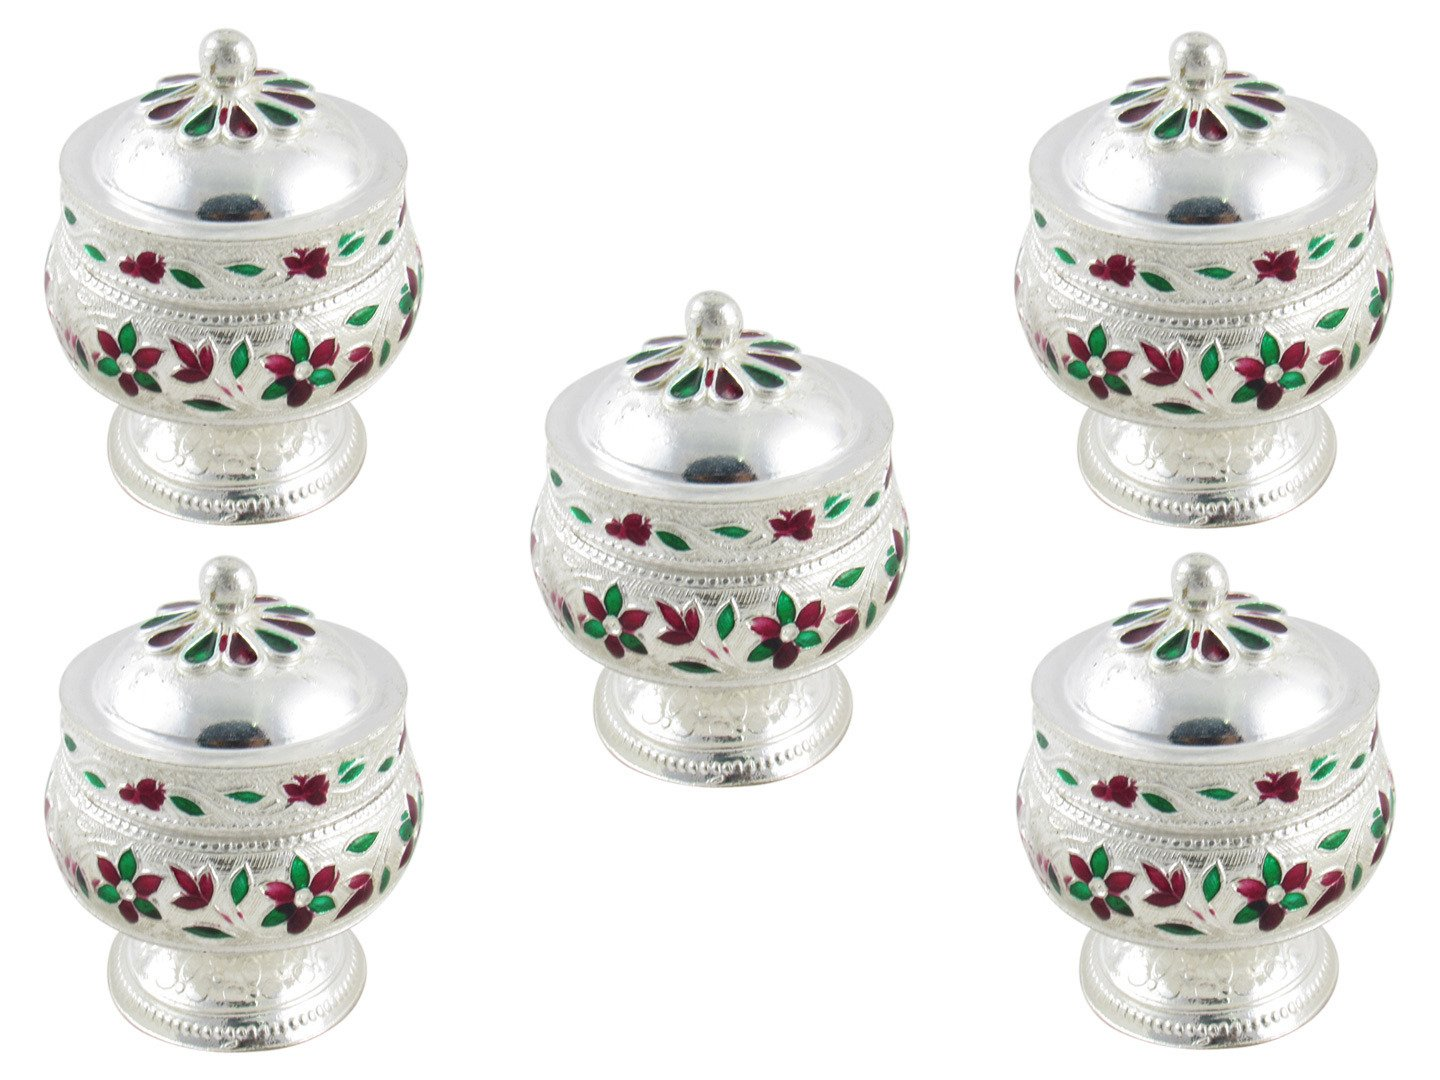 GoldGiftIdeas German Silver Sindoor Dabbi Set, Silver Plated Pooja Items for Home, Return Gift for Wedding and Housewarming with Designer Potli Bags (Pack of 5) GGIPITSA - 116